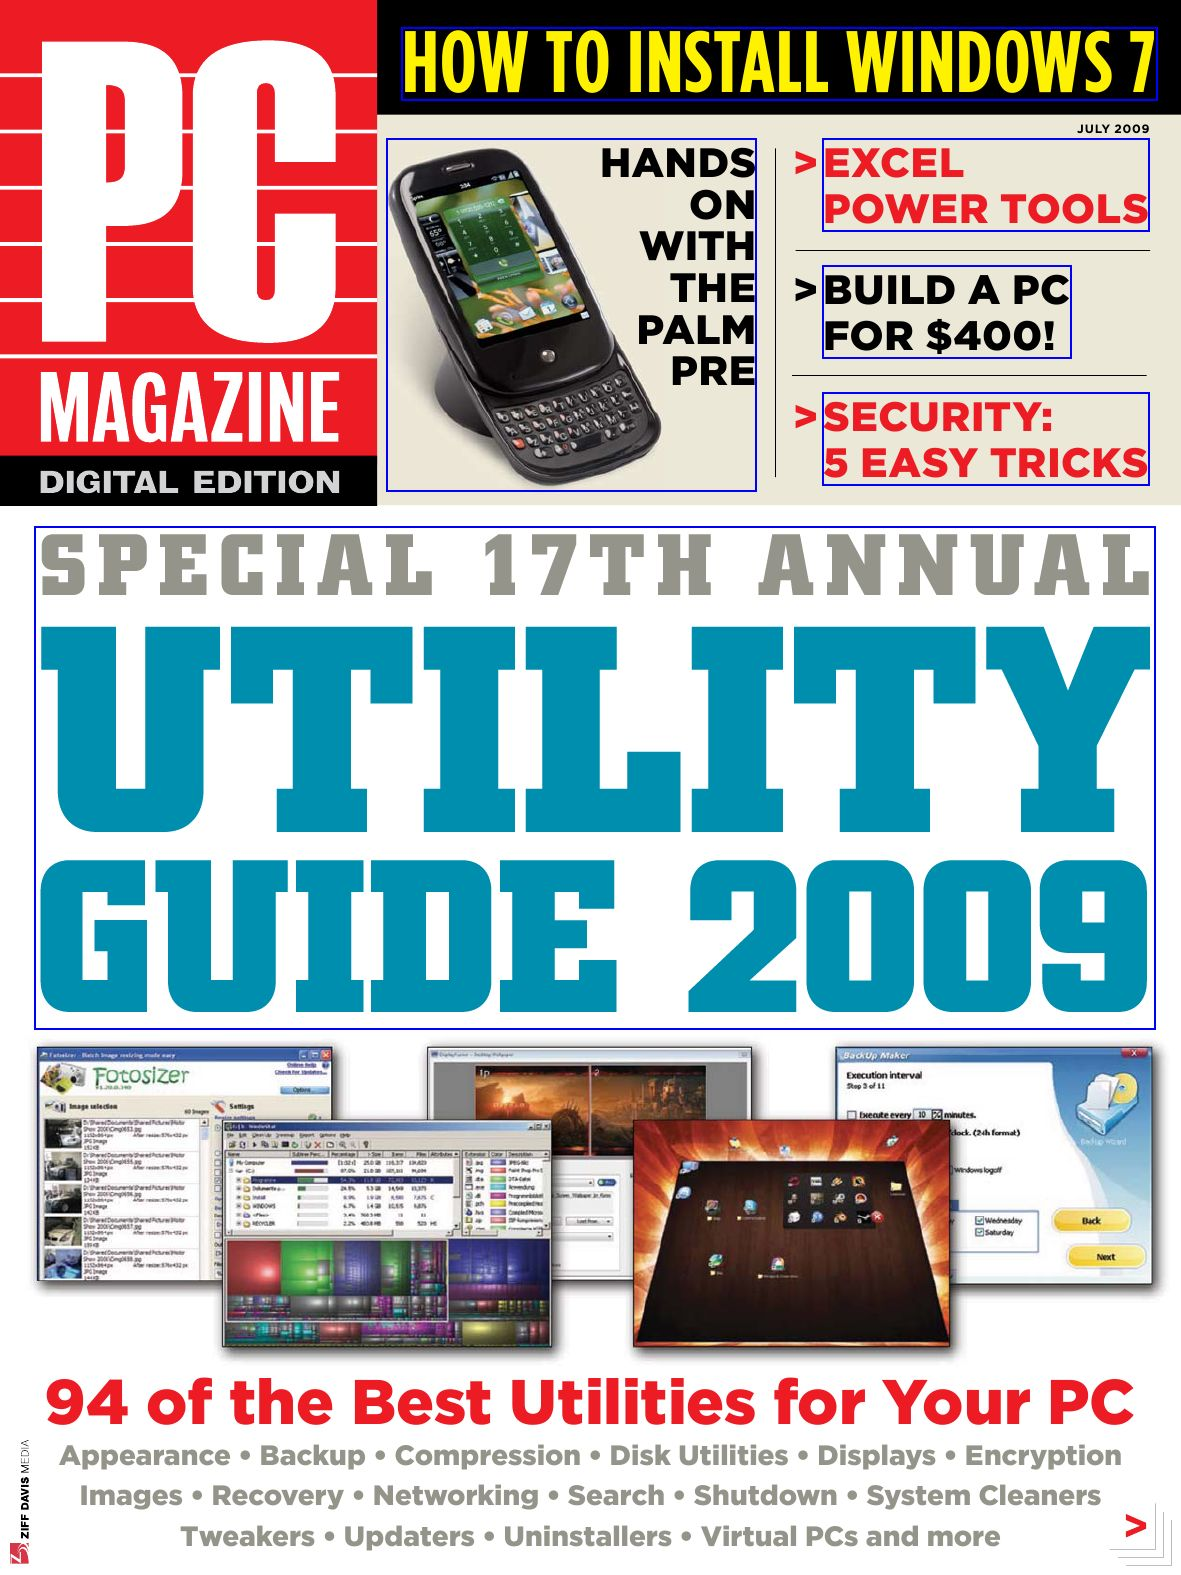 Pcmagazinejuly2009 By Jackie Woo Issuu Short Circuit Reboot Tim Hill Might Give Johnny5 New Life